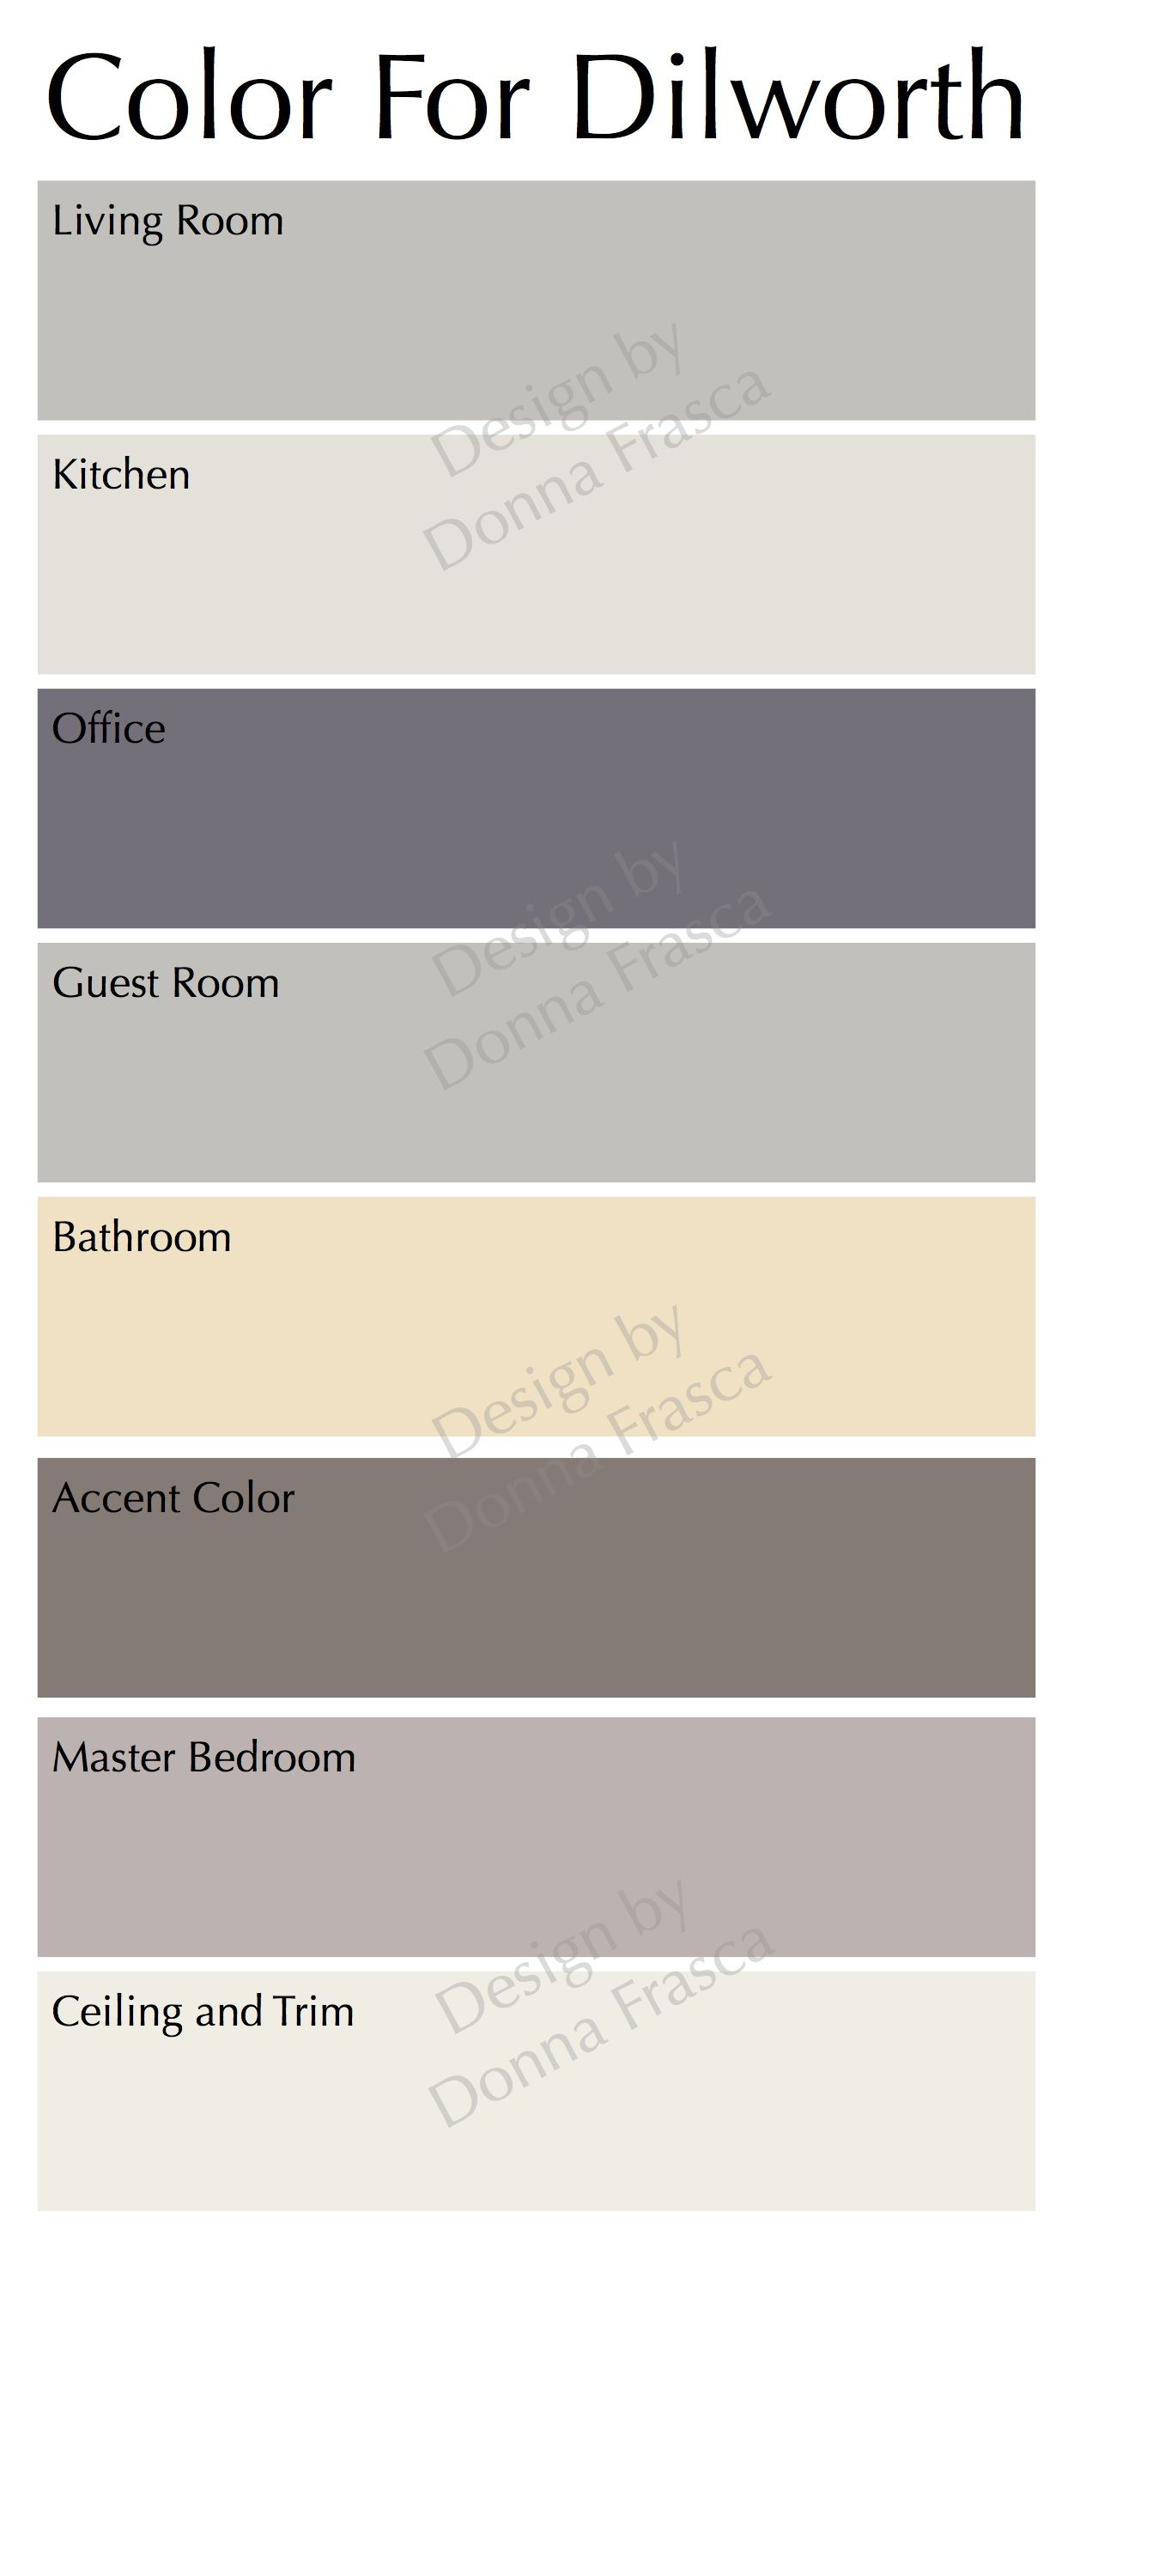 Color palette for home interiors  Choosing Contemporary Color For a Bungalow In Dilworth Charlotte